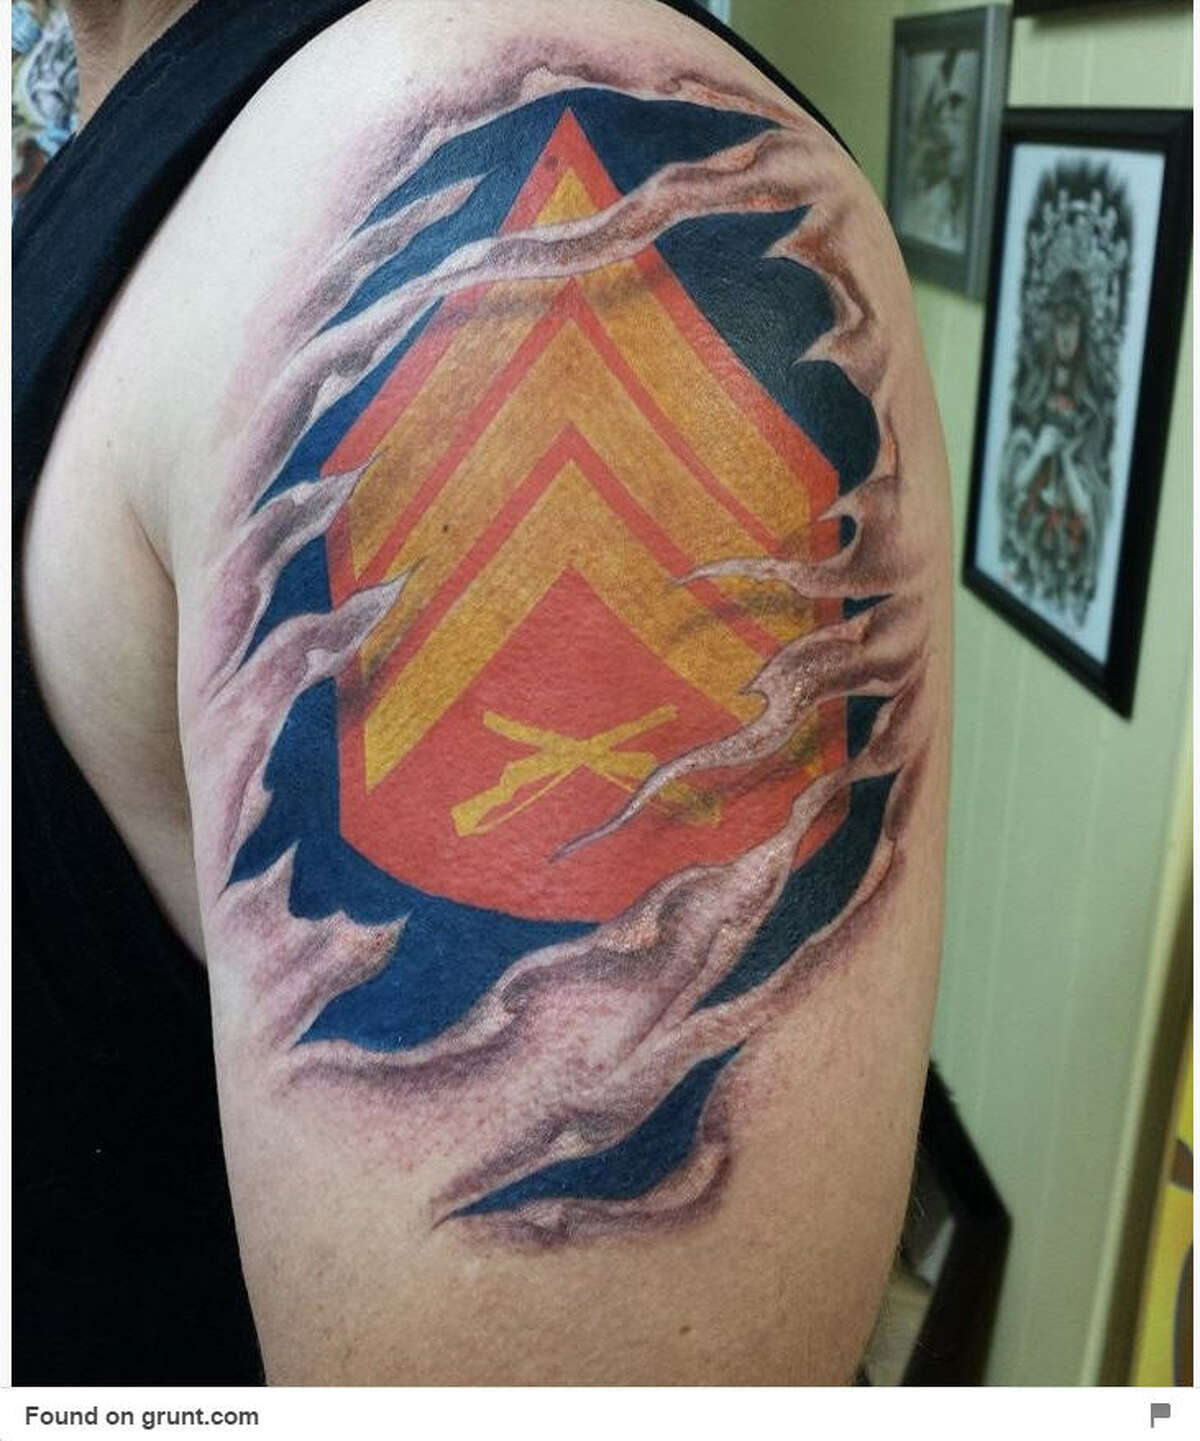 Tattoos tell a story. See some of the military themed tattoos seen on Pinterest. Like this one here.